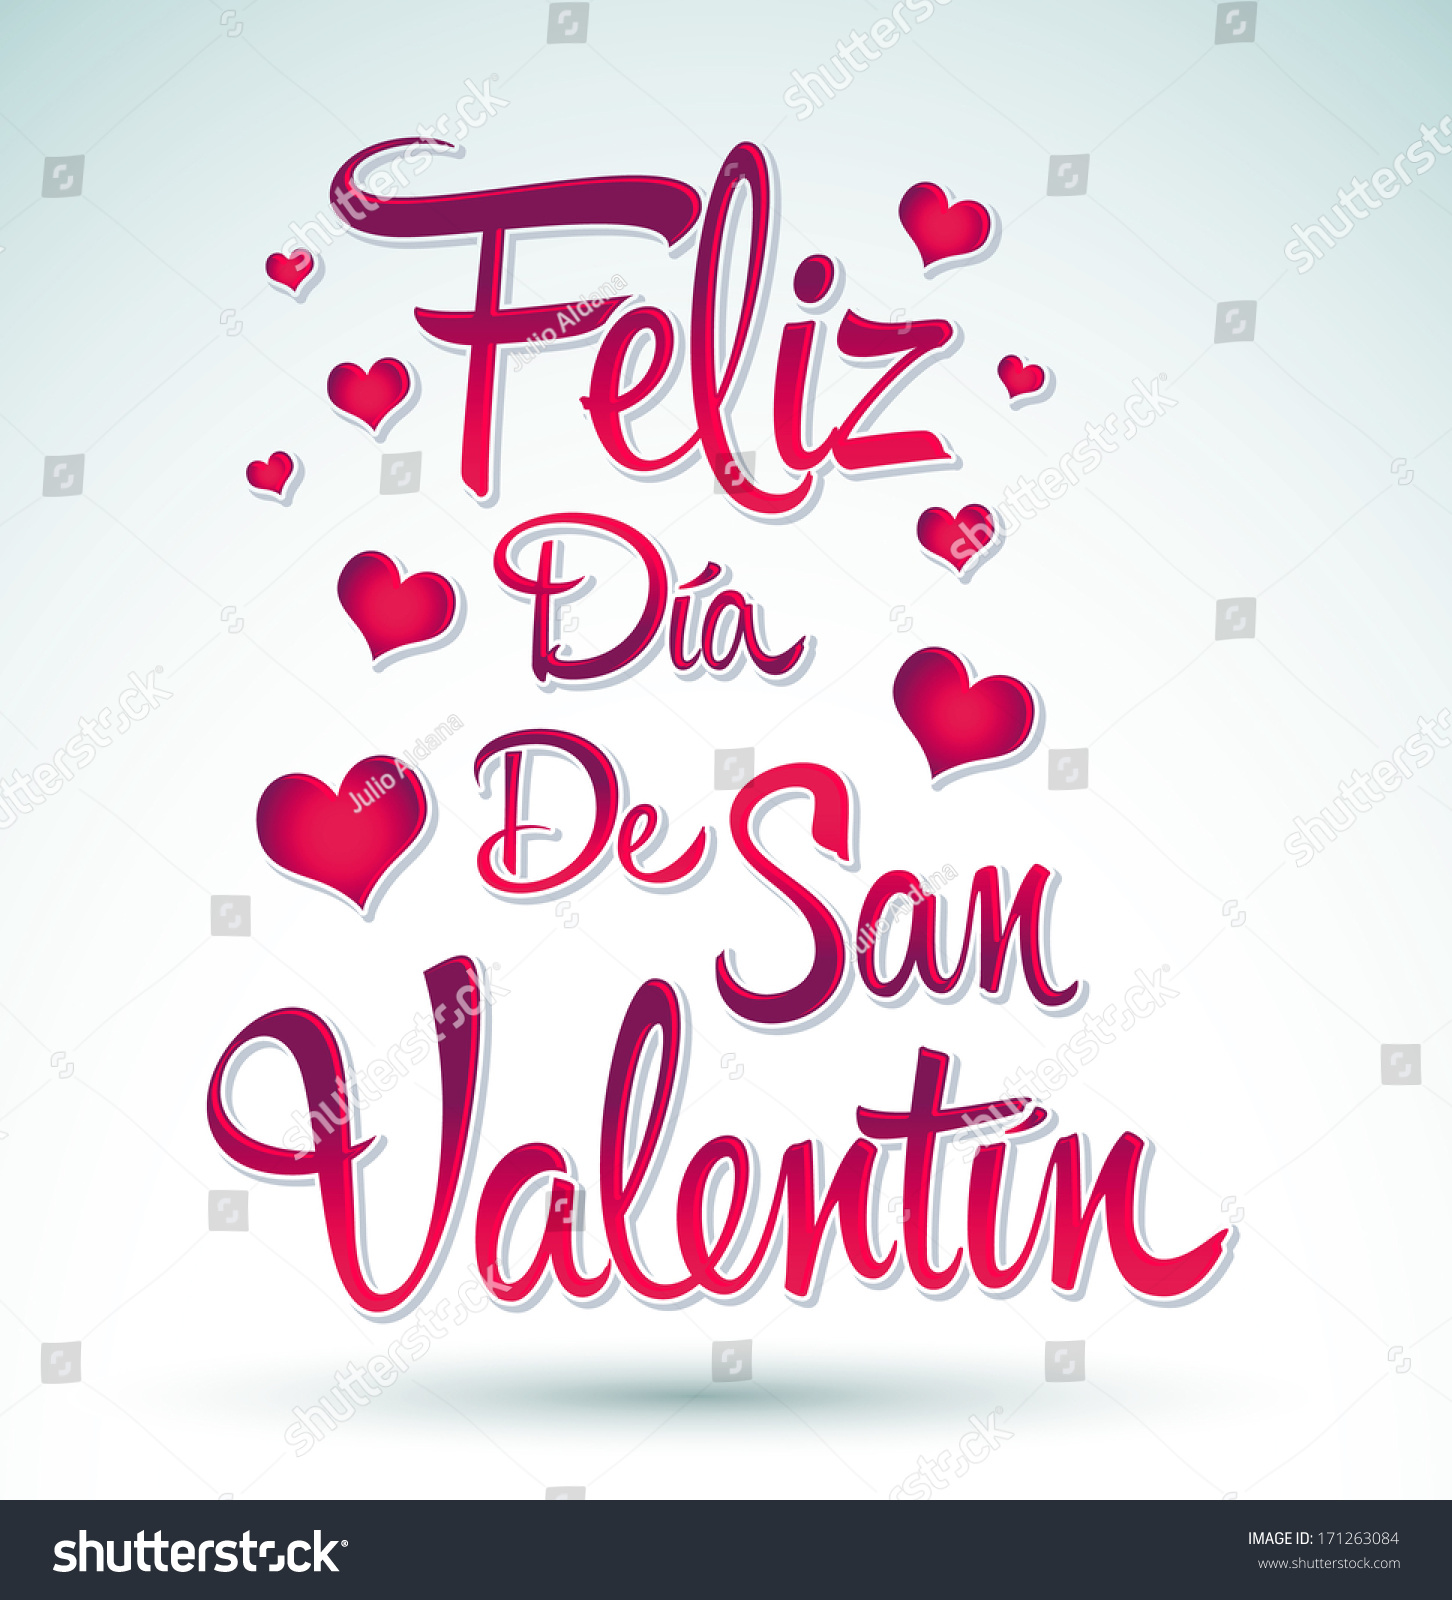 Feliz Dia De San Valentin   Happy Valentines Day Spanish Text   Vector  Lettering #171263084